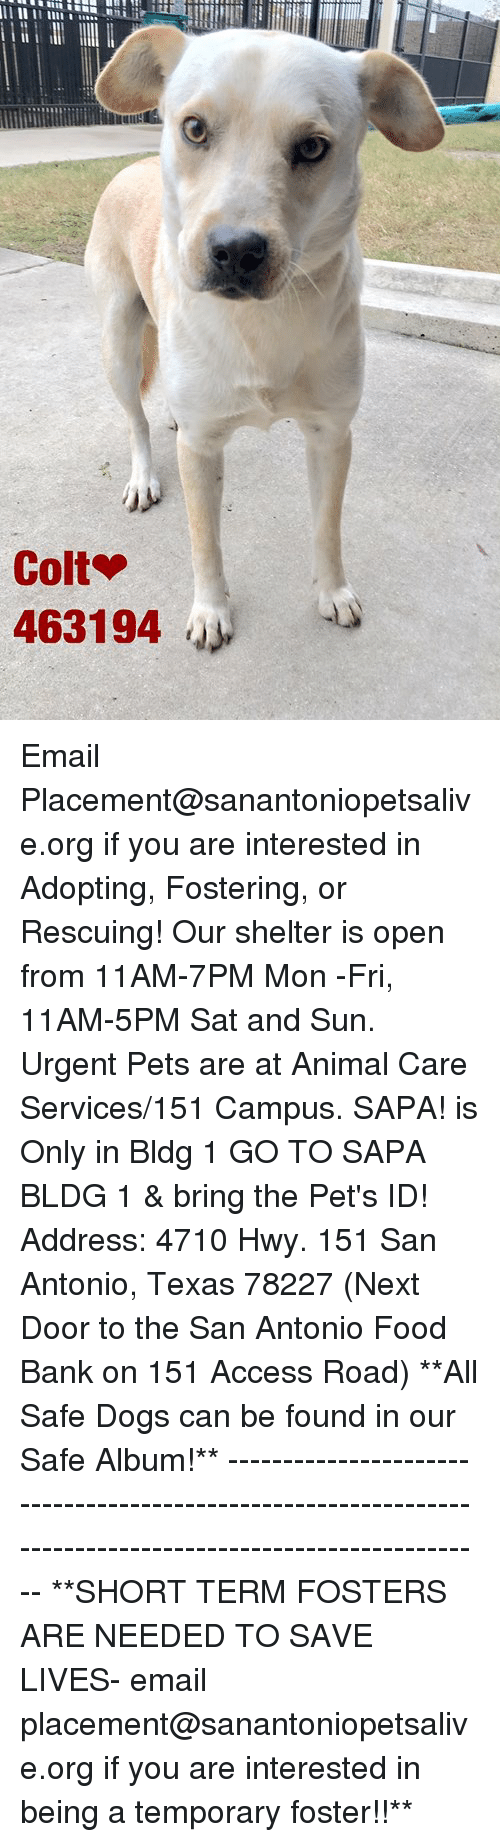 Dogs, Food, and Memes: Colt  463194 Email Placement@sanantoniopetsalive.org if you are interested in Adopting, Fostering, or Rescuing!  Our shelter is open from 11AM-7PM Mon -Fri, 11AM-5PM Sat and Sun.  Urgent Pets are at Animal Care Services/151 Campus. SAPA! is Only in Bldg 1 GO TO SAPA BLDG 1 & bring the Pet's ID! Address: 4710 Hwy. 151 San Antonio, Texas 78227 (Next Door to the San Antonio Food Bank on 151 Access Road)  **All Safe Dogs can be found in our Safe Album!** ---------------------------------------------------------------------------------------------------------- **SHORT TERM FOSTERS ARE NEEDED TO SAVE LIVES- email placement@sanantoniopetsalive.org if you are interested in being a temporary foster!!**